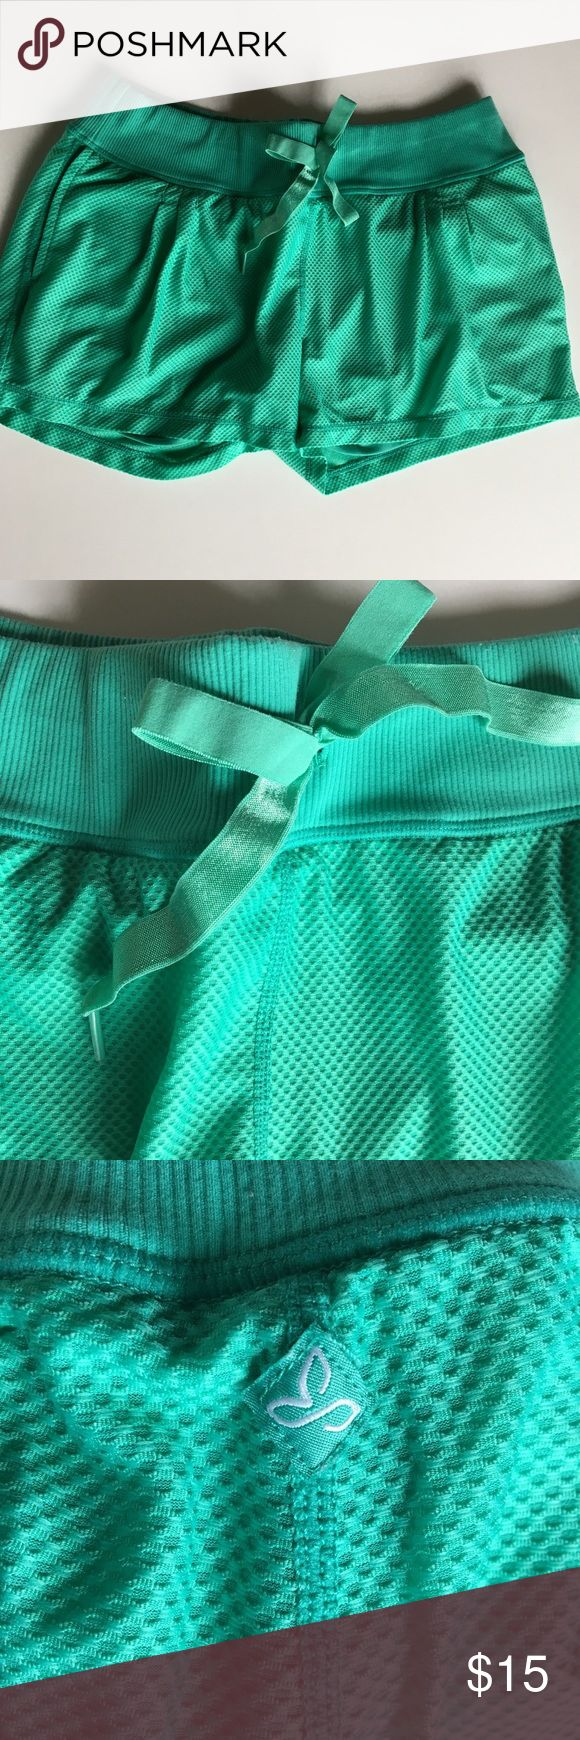 PrAna Teal shorts Size M PrAna Teal shorts Size M Lined with spandex shorts (as shown in picture) Super comfortable! Pre-owed, great condition If you need additional pictures or measurements please feel free to ask! 😊 Prana Shorts